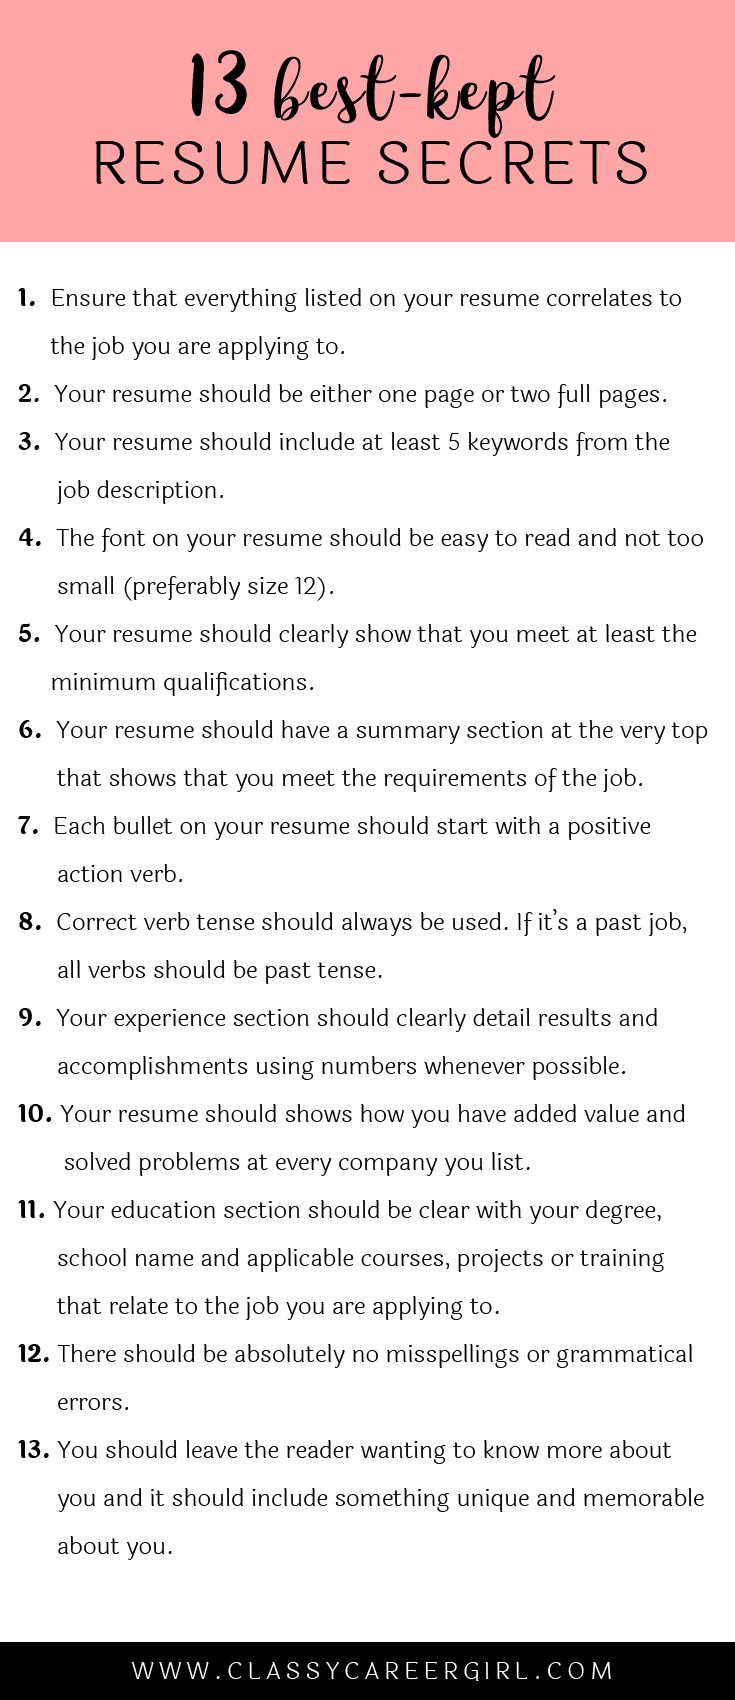 Opposenewapstandardsus  Stunning  Ideas About Resume On Pinterest  Cv Format Resume Cv And  With Fair Some Hiring Managers Will Toss Your Resume Out If You Dont Know These  With Beauteous Server Job Description Resume Also Pilot Resume In Addition Massage Therapist Resume And List Of Skills To Put On A Resume As Well As Executive Resumes Additionally Social Worker Resume From Pinterestcom With Opposenewapstandardsus  Fair  Ideas About Resume On Pinterest  Cv Format Resume Cv And  With Beauteous Some Hiring Managers Will Toss Your Resume Out If You Dont Know These  And Stunning Server Job Description Resume Also Pilot Resume In Addition Massage Therapist Resume From Pinterestcom